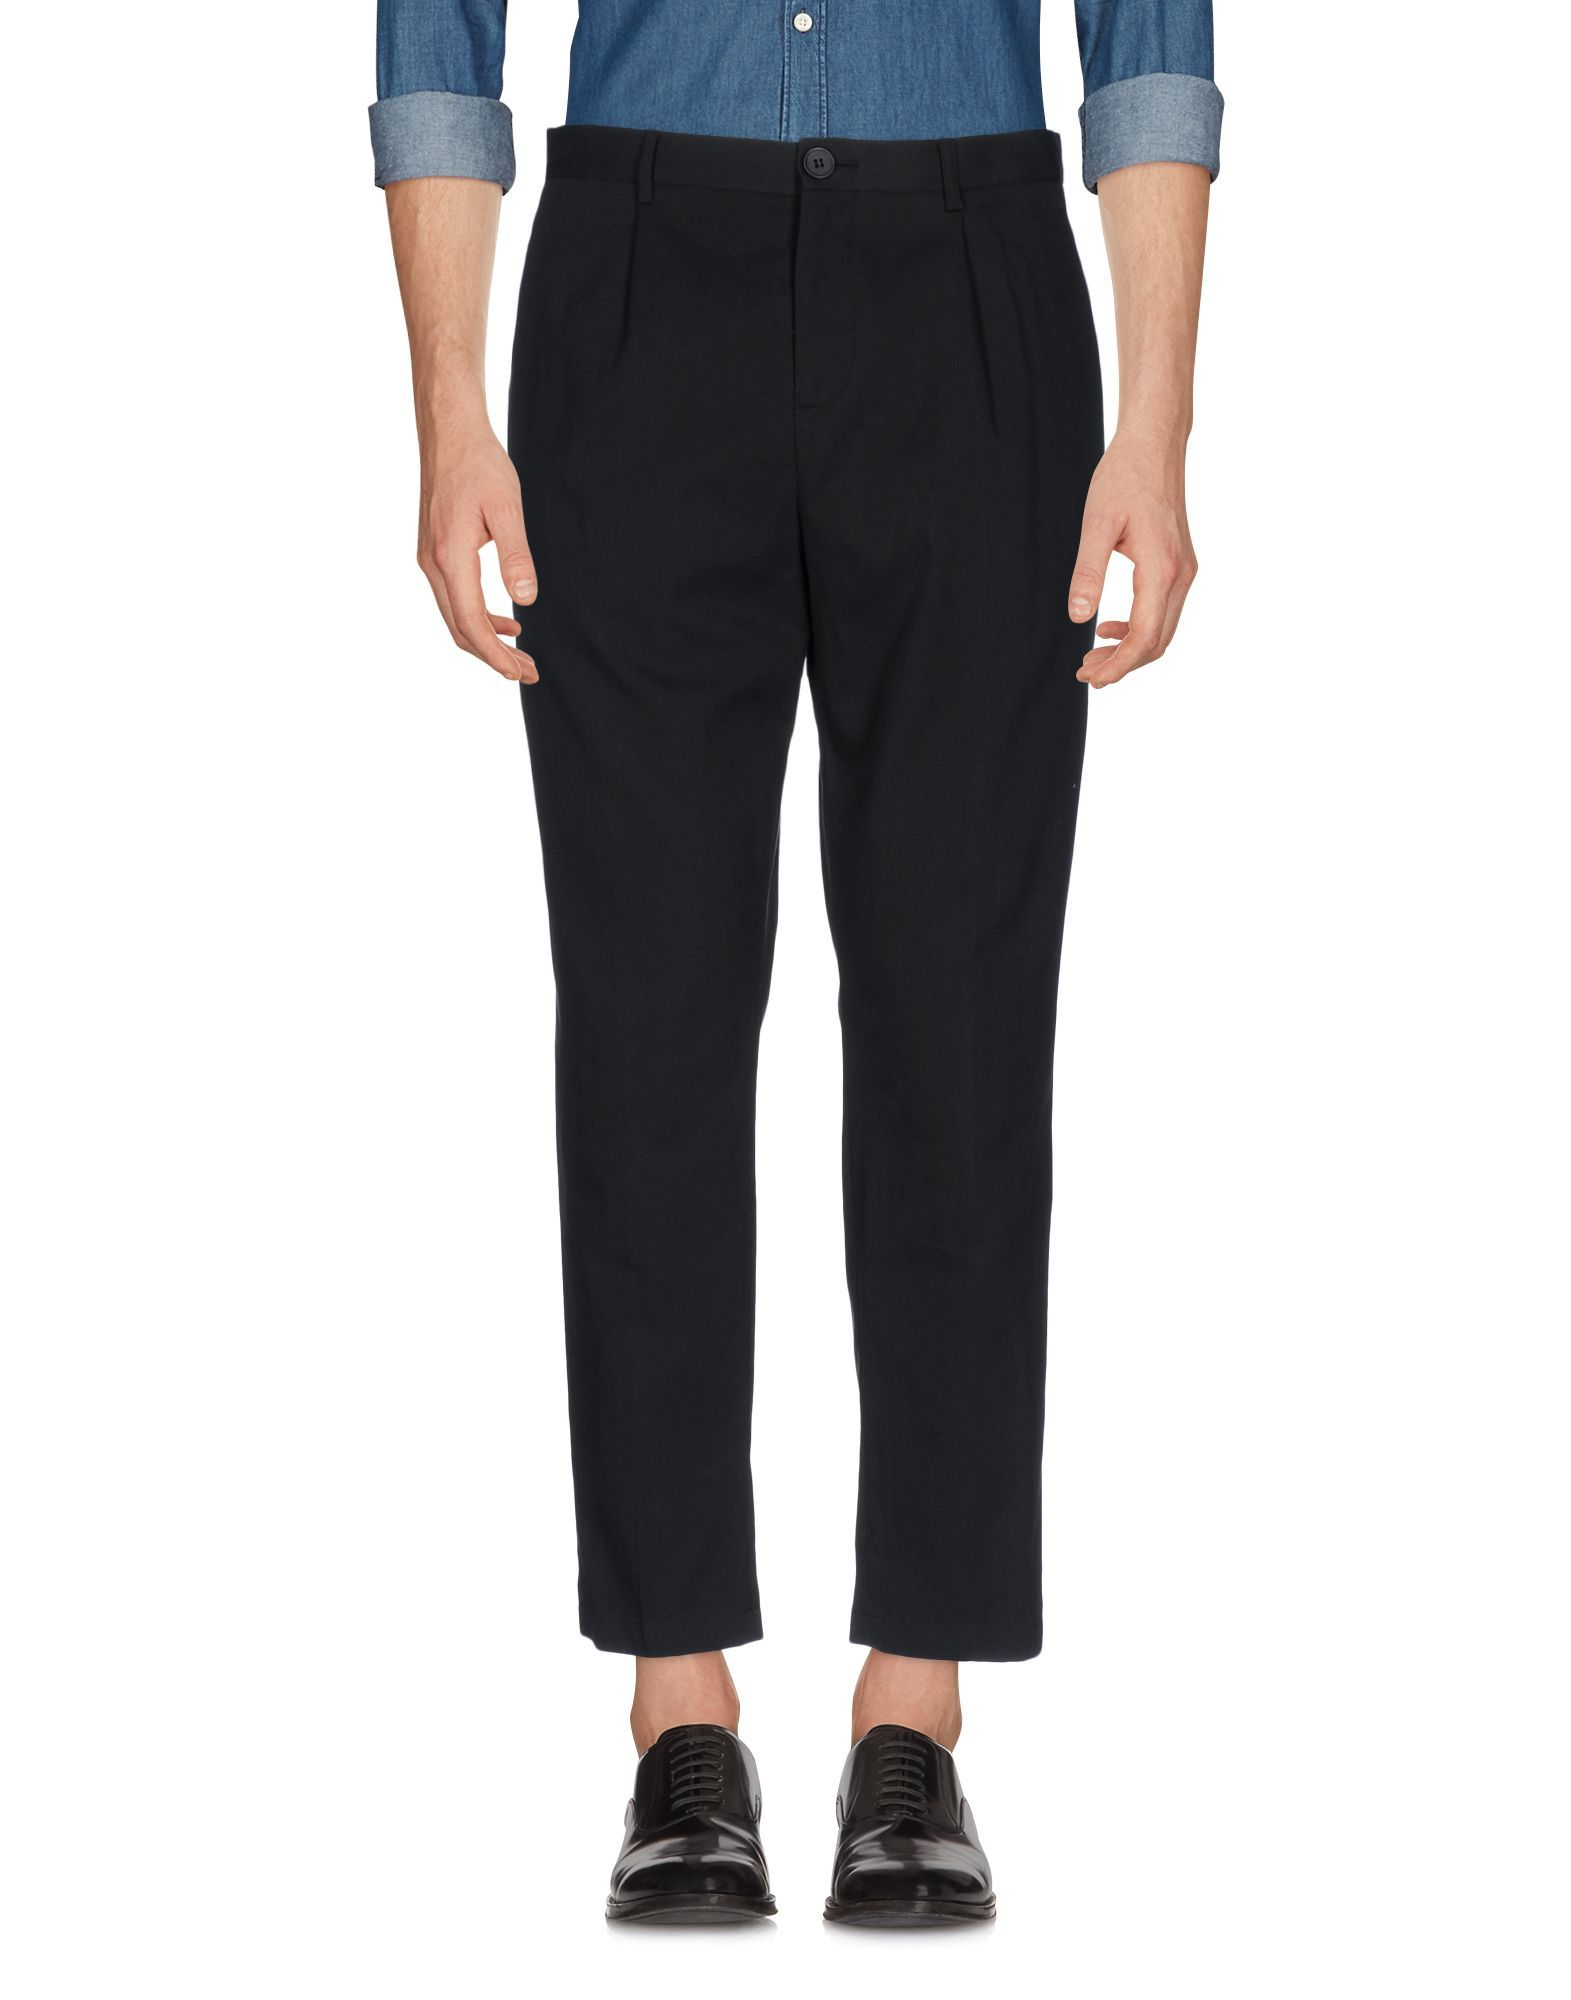 Selected Homme Black Cotton Trousers